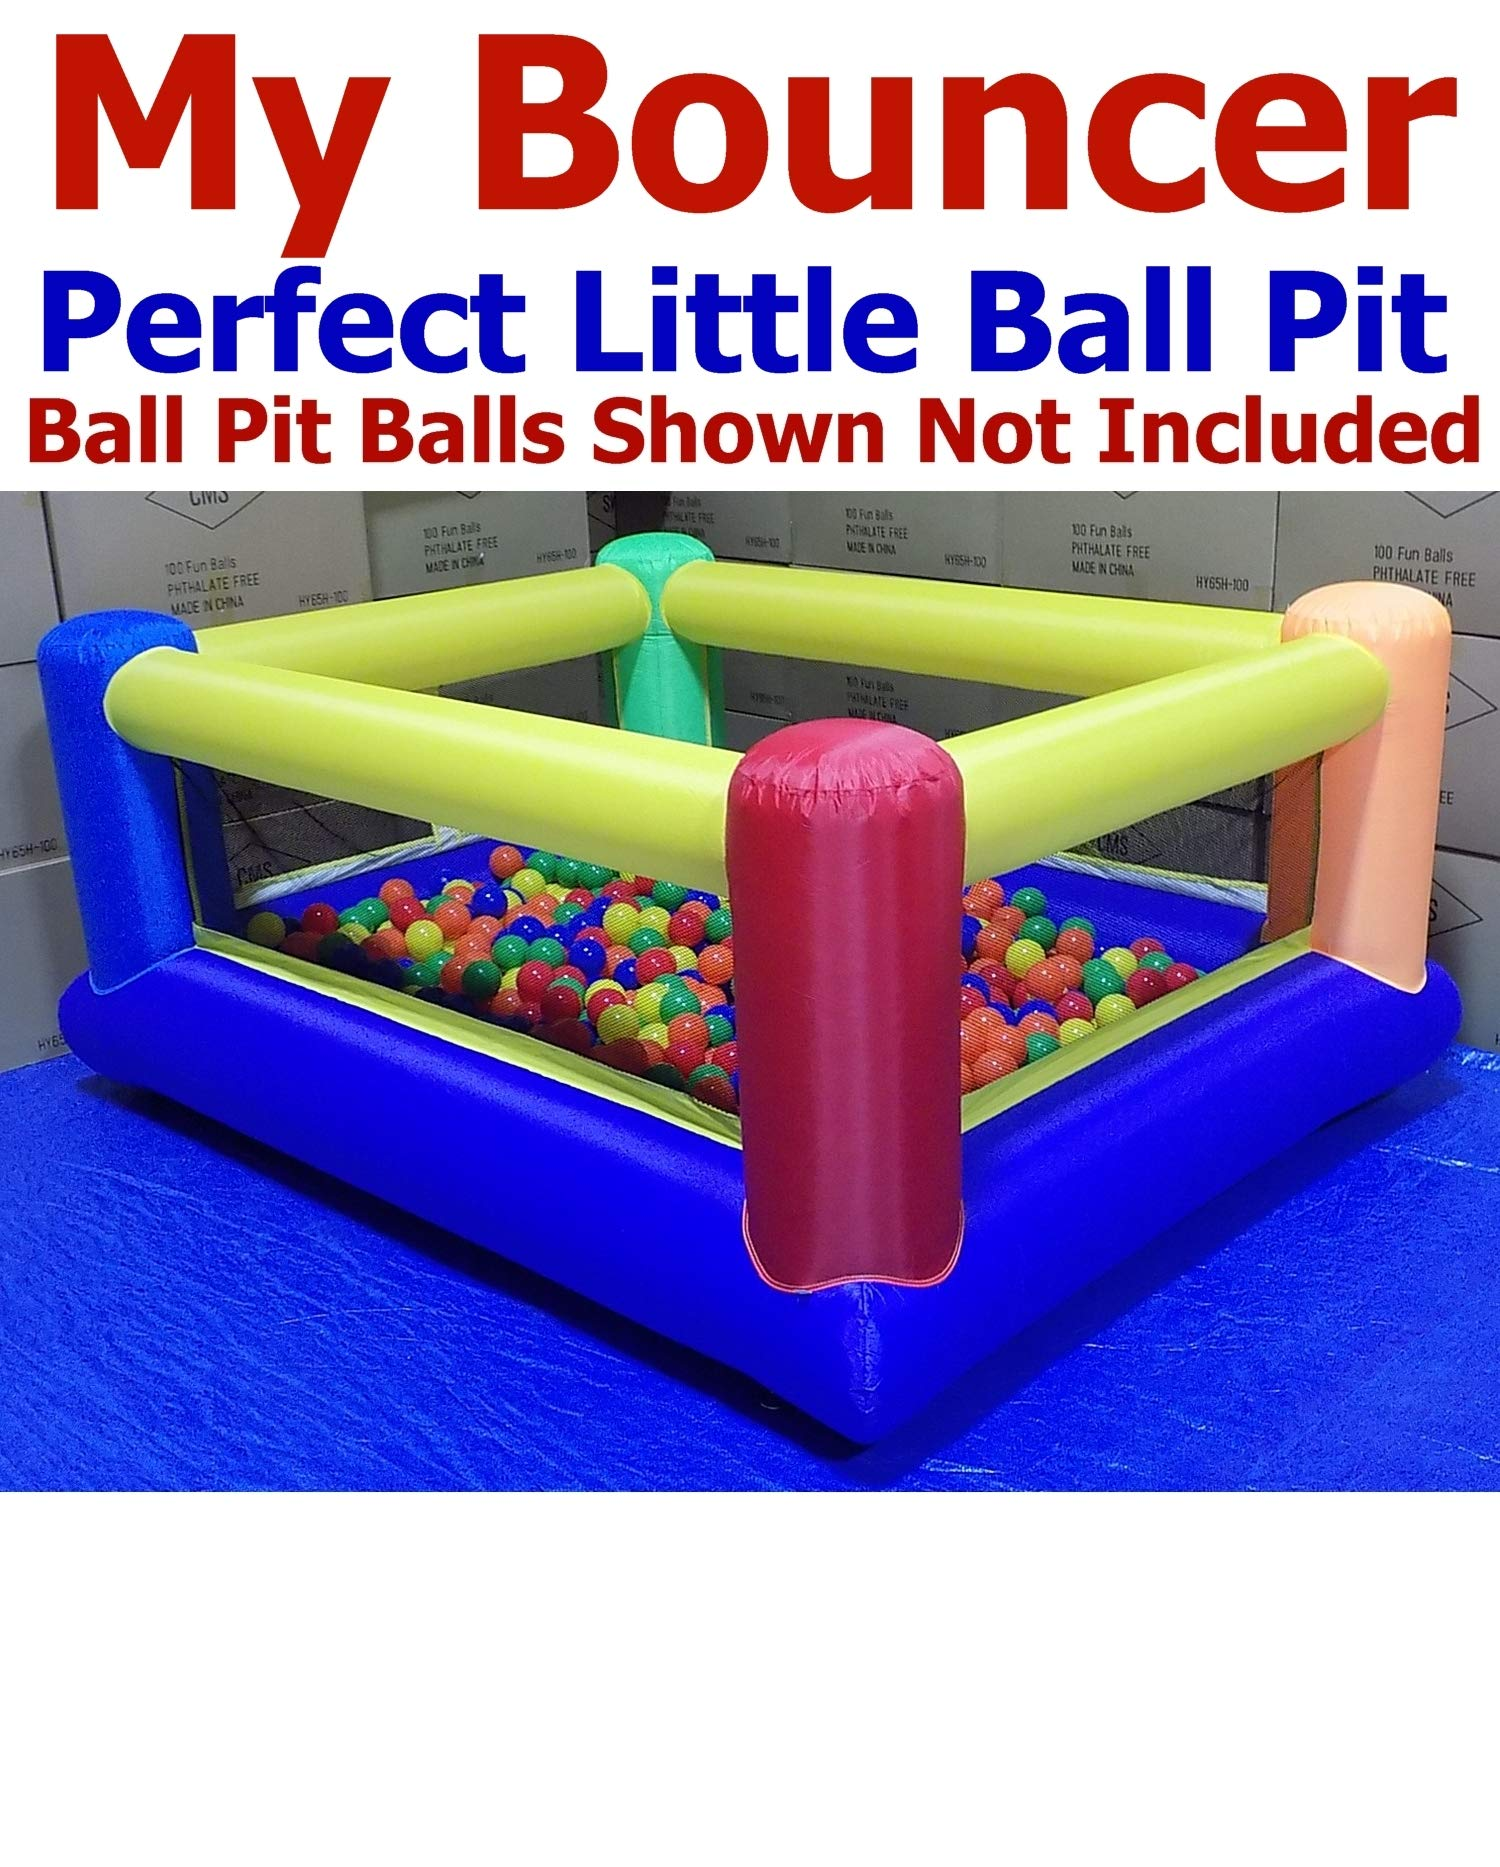 My Balls Pack of Jumbo 3'' Crush-Proof Ball Pit Balls - 5 Bright Colors, Phthalate Free, BPA Free, PVC Free, Non-Toxic, Non-Recycled Plastic by My Balls (Image #5)